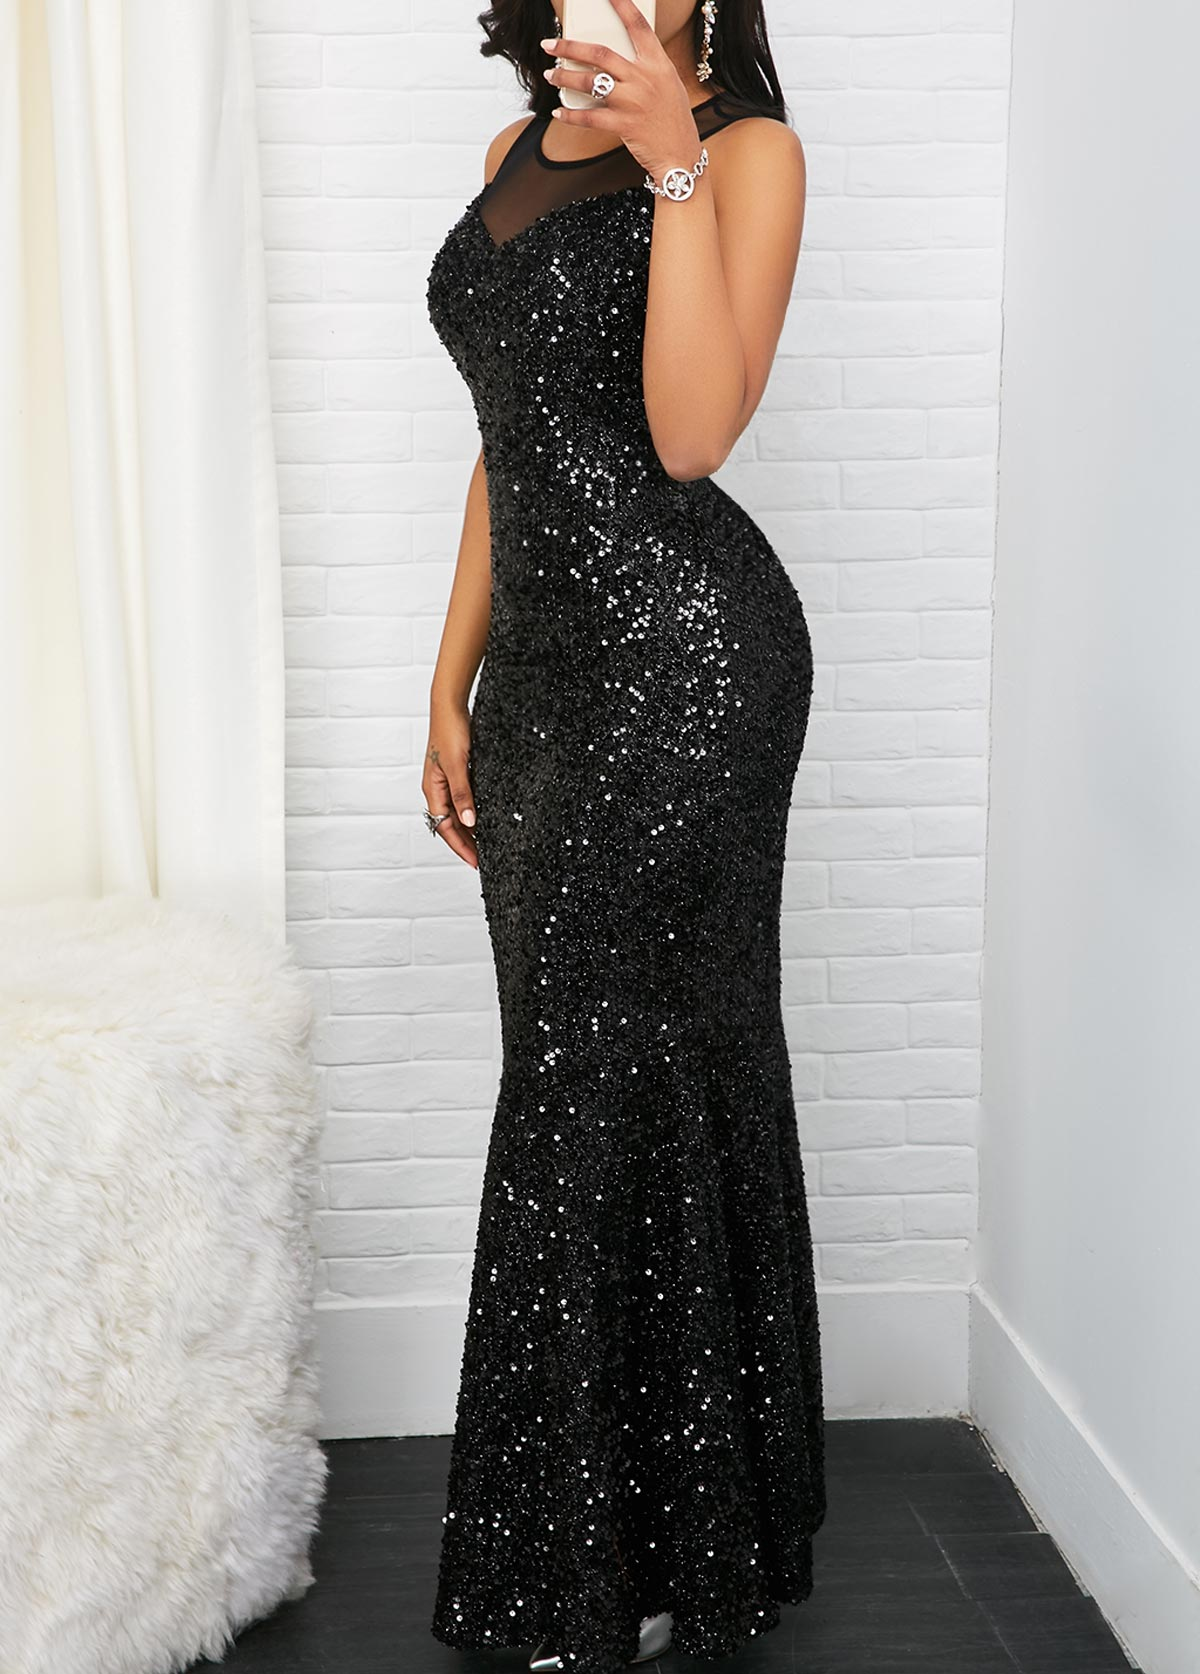 ded72da4f1a02d Black Sleeveless Mesh Panel Sequin Maxi Dress. AddThis Sharing Buttons